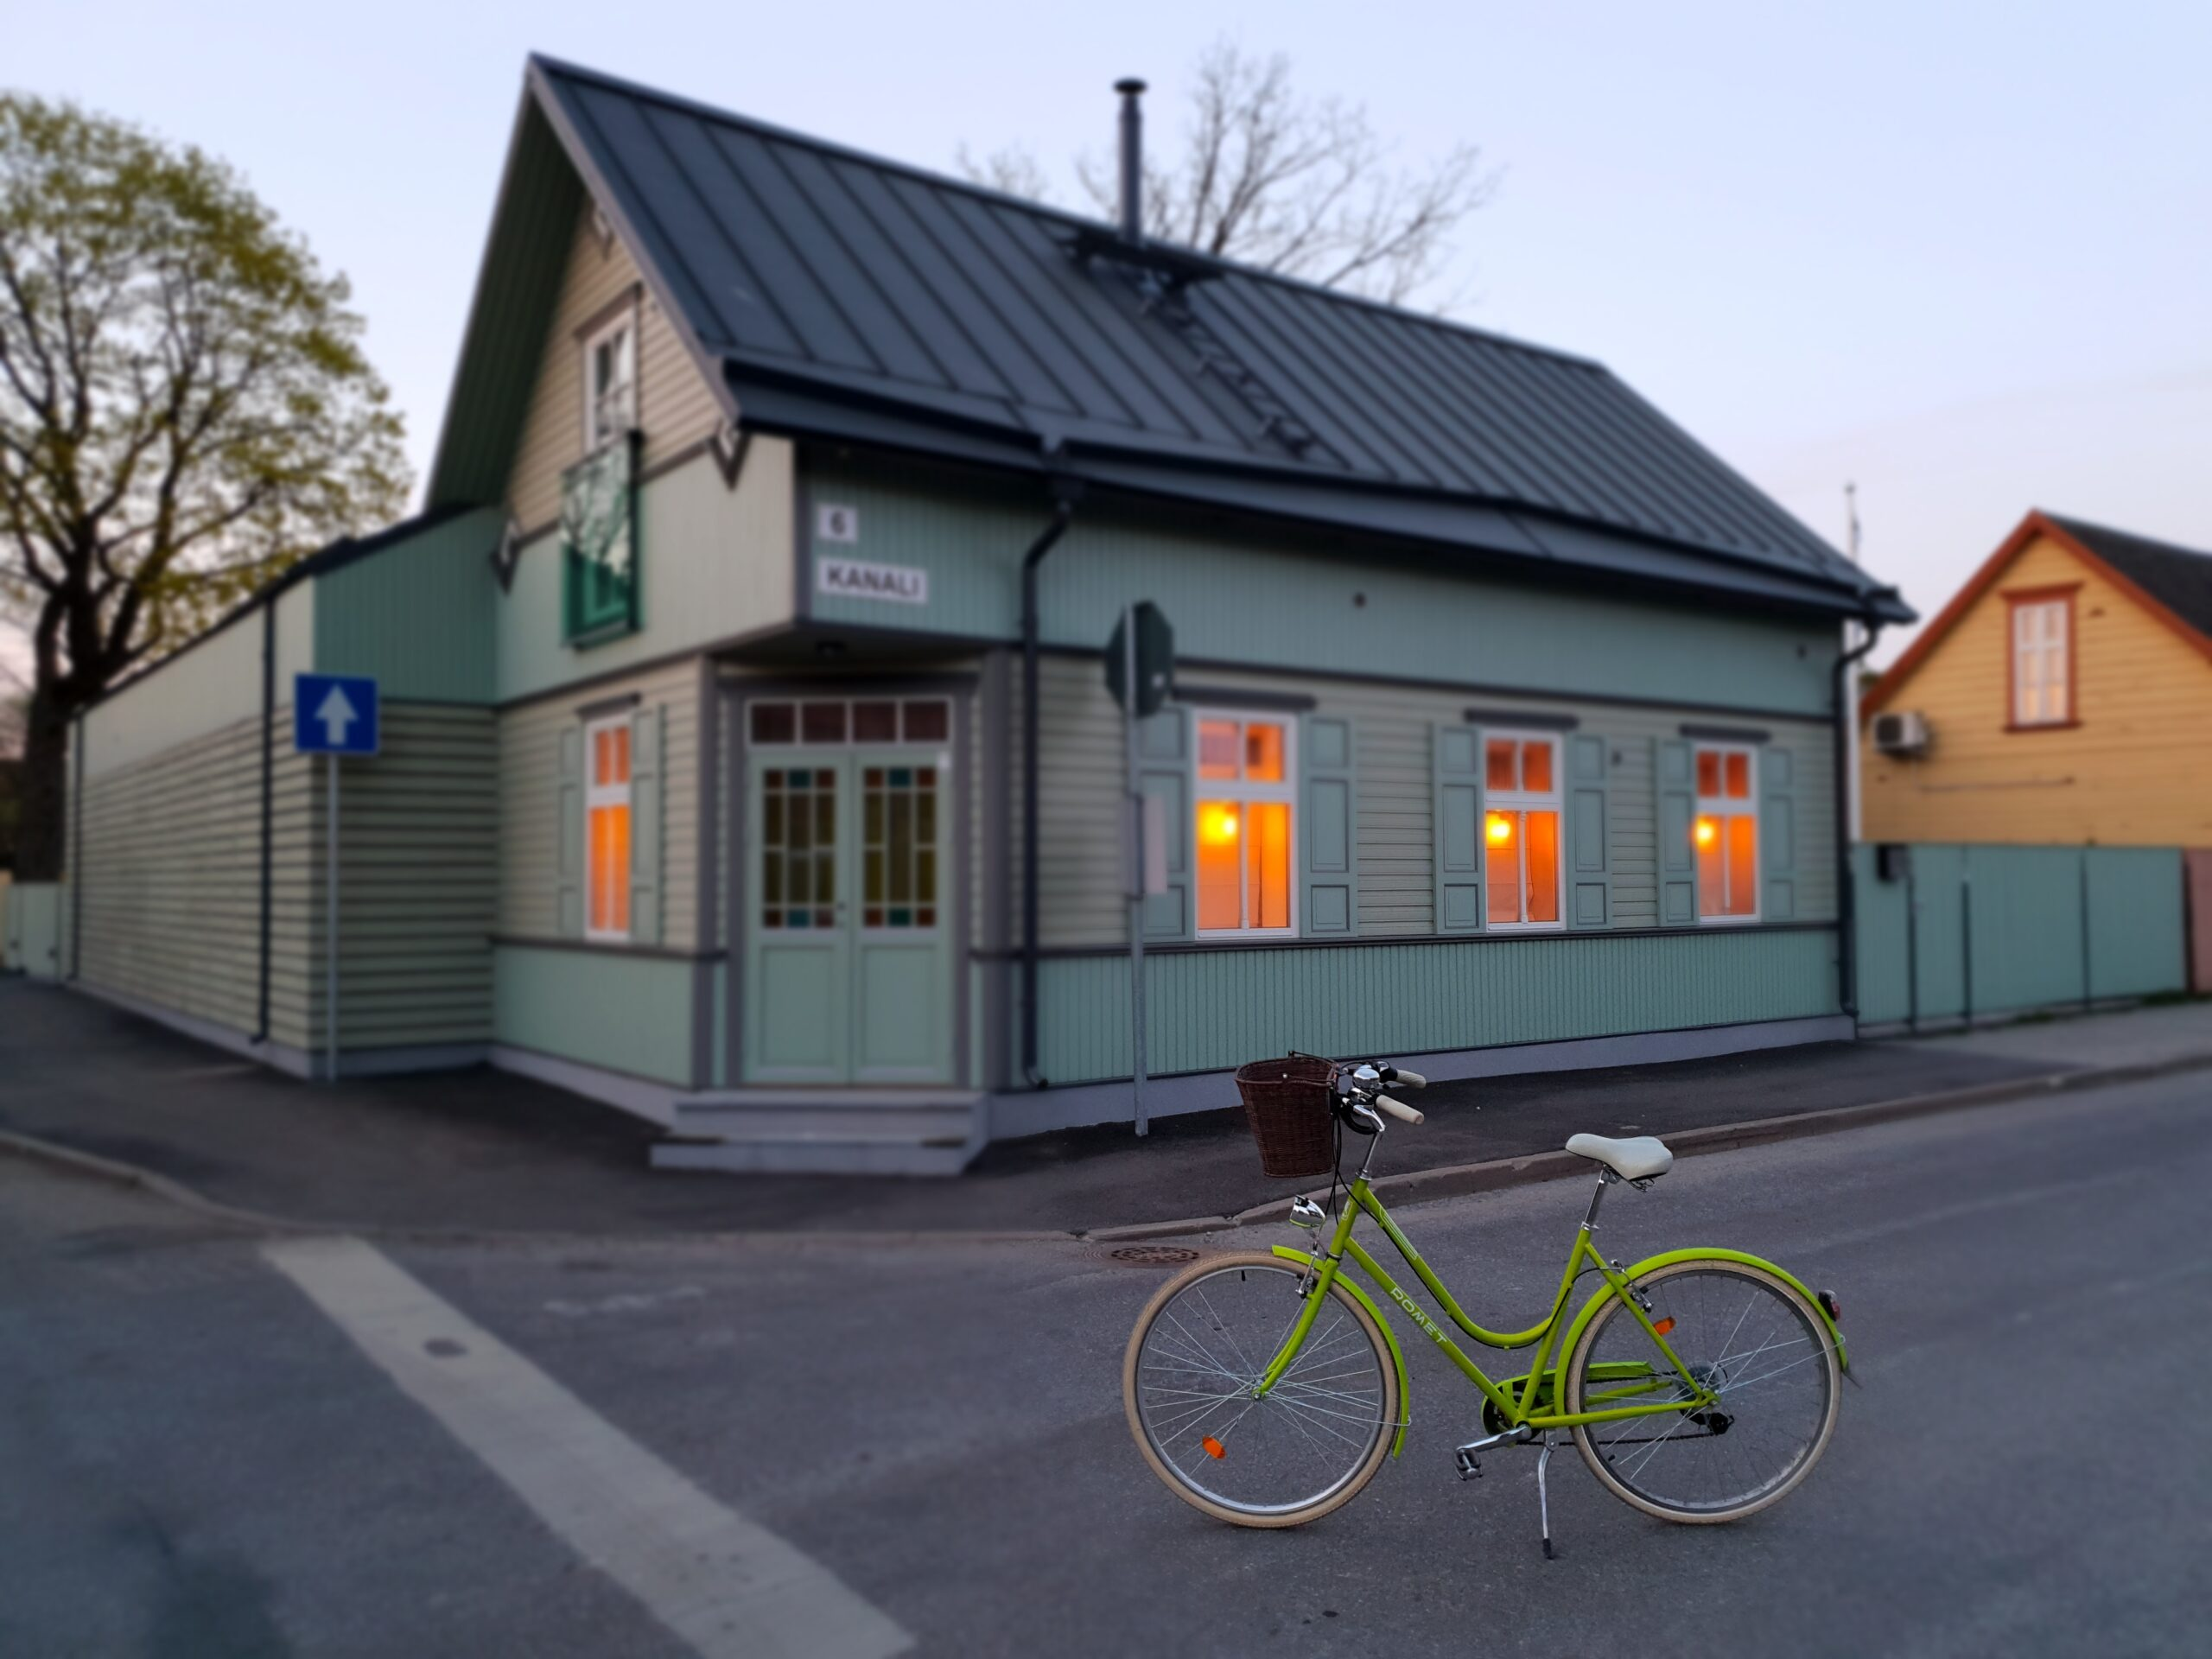 Green Bicycle in Parnu_Errit Kuldkepp_Positively Inspiring Lifestyle_Spring 2019 (3)